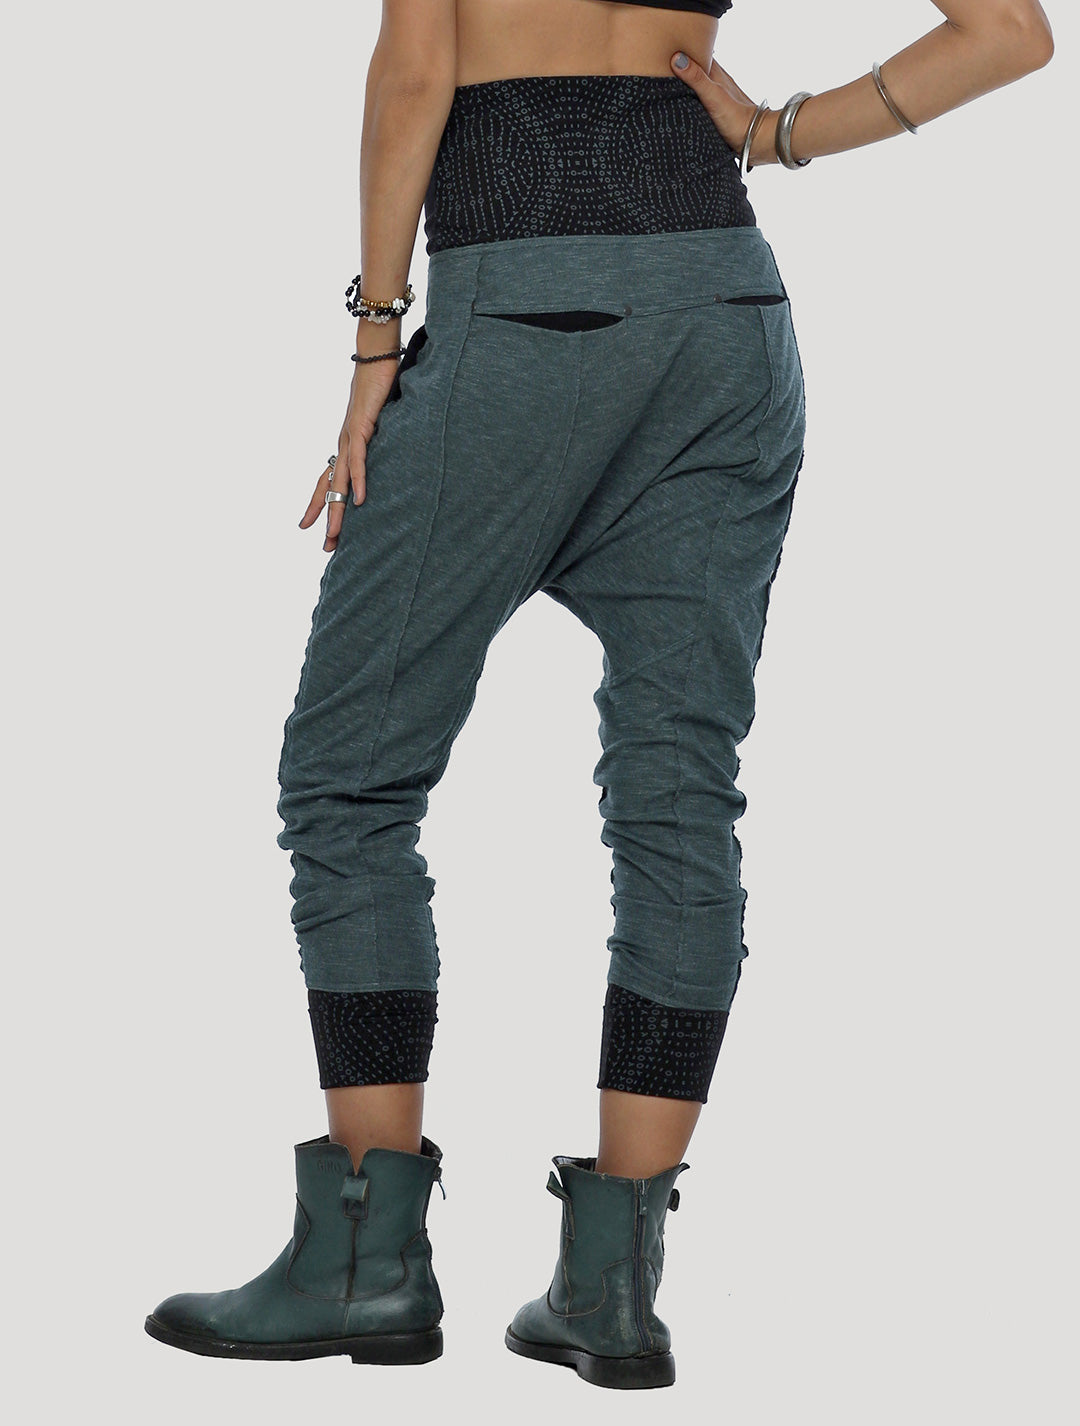 Onicha Low Crotch Track Pants - Psylo Fashion